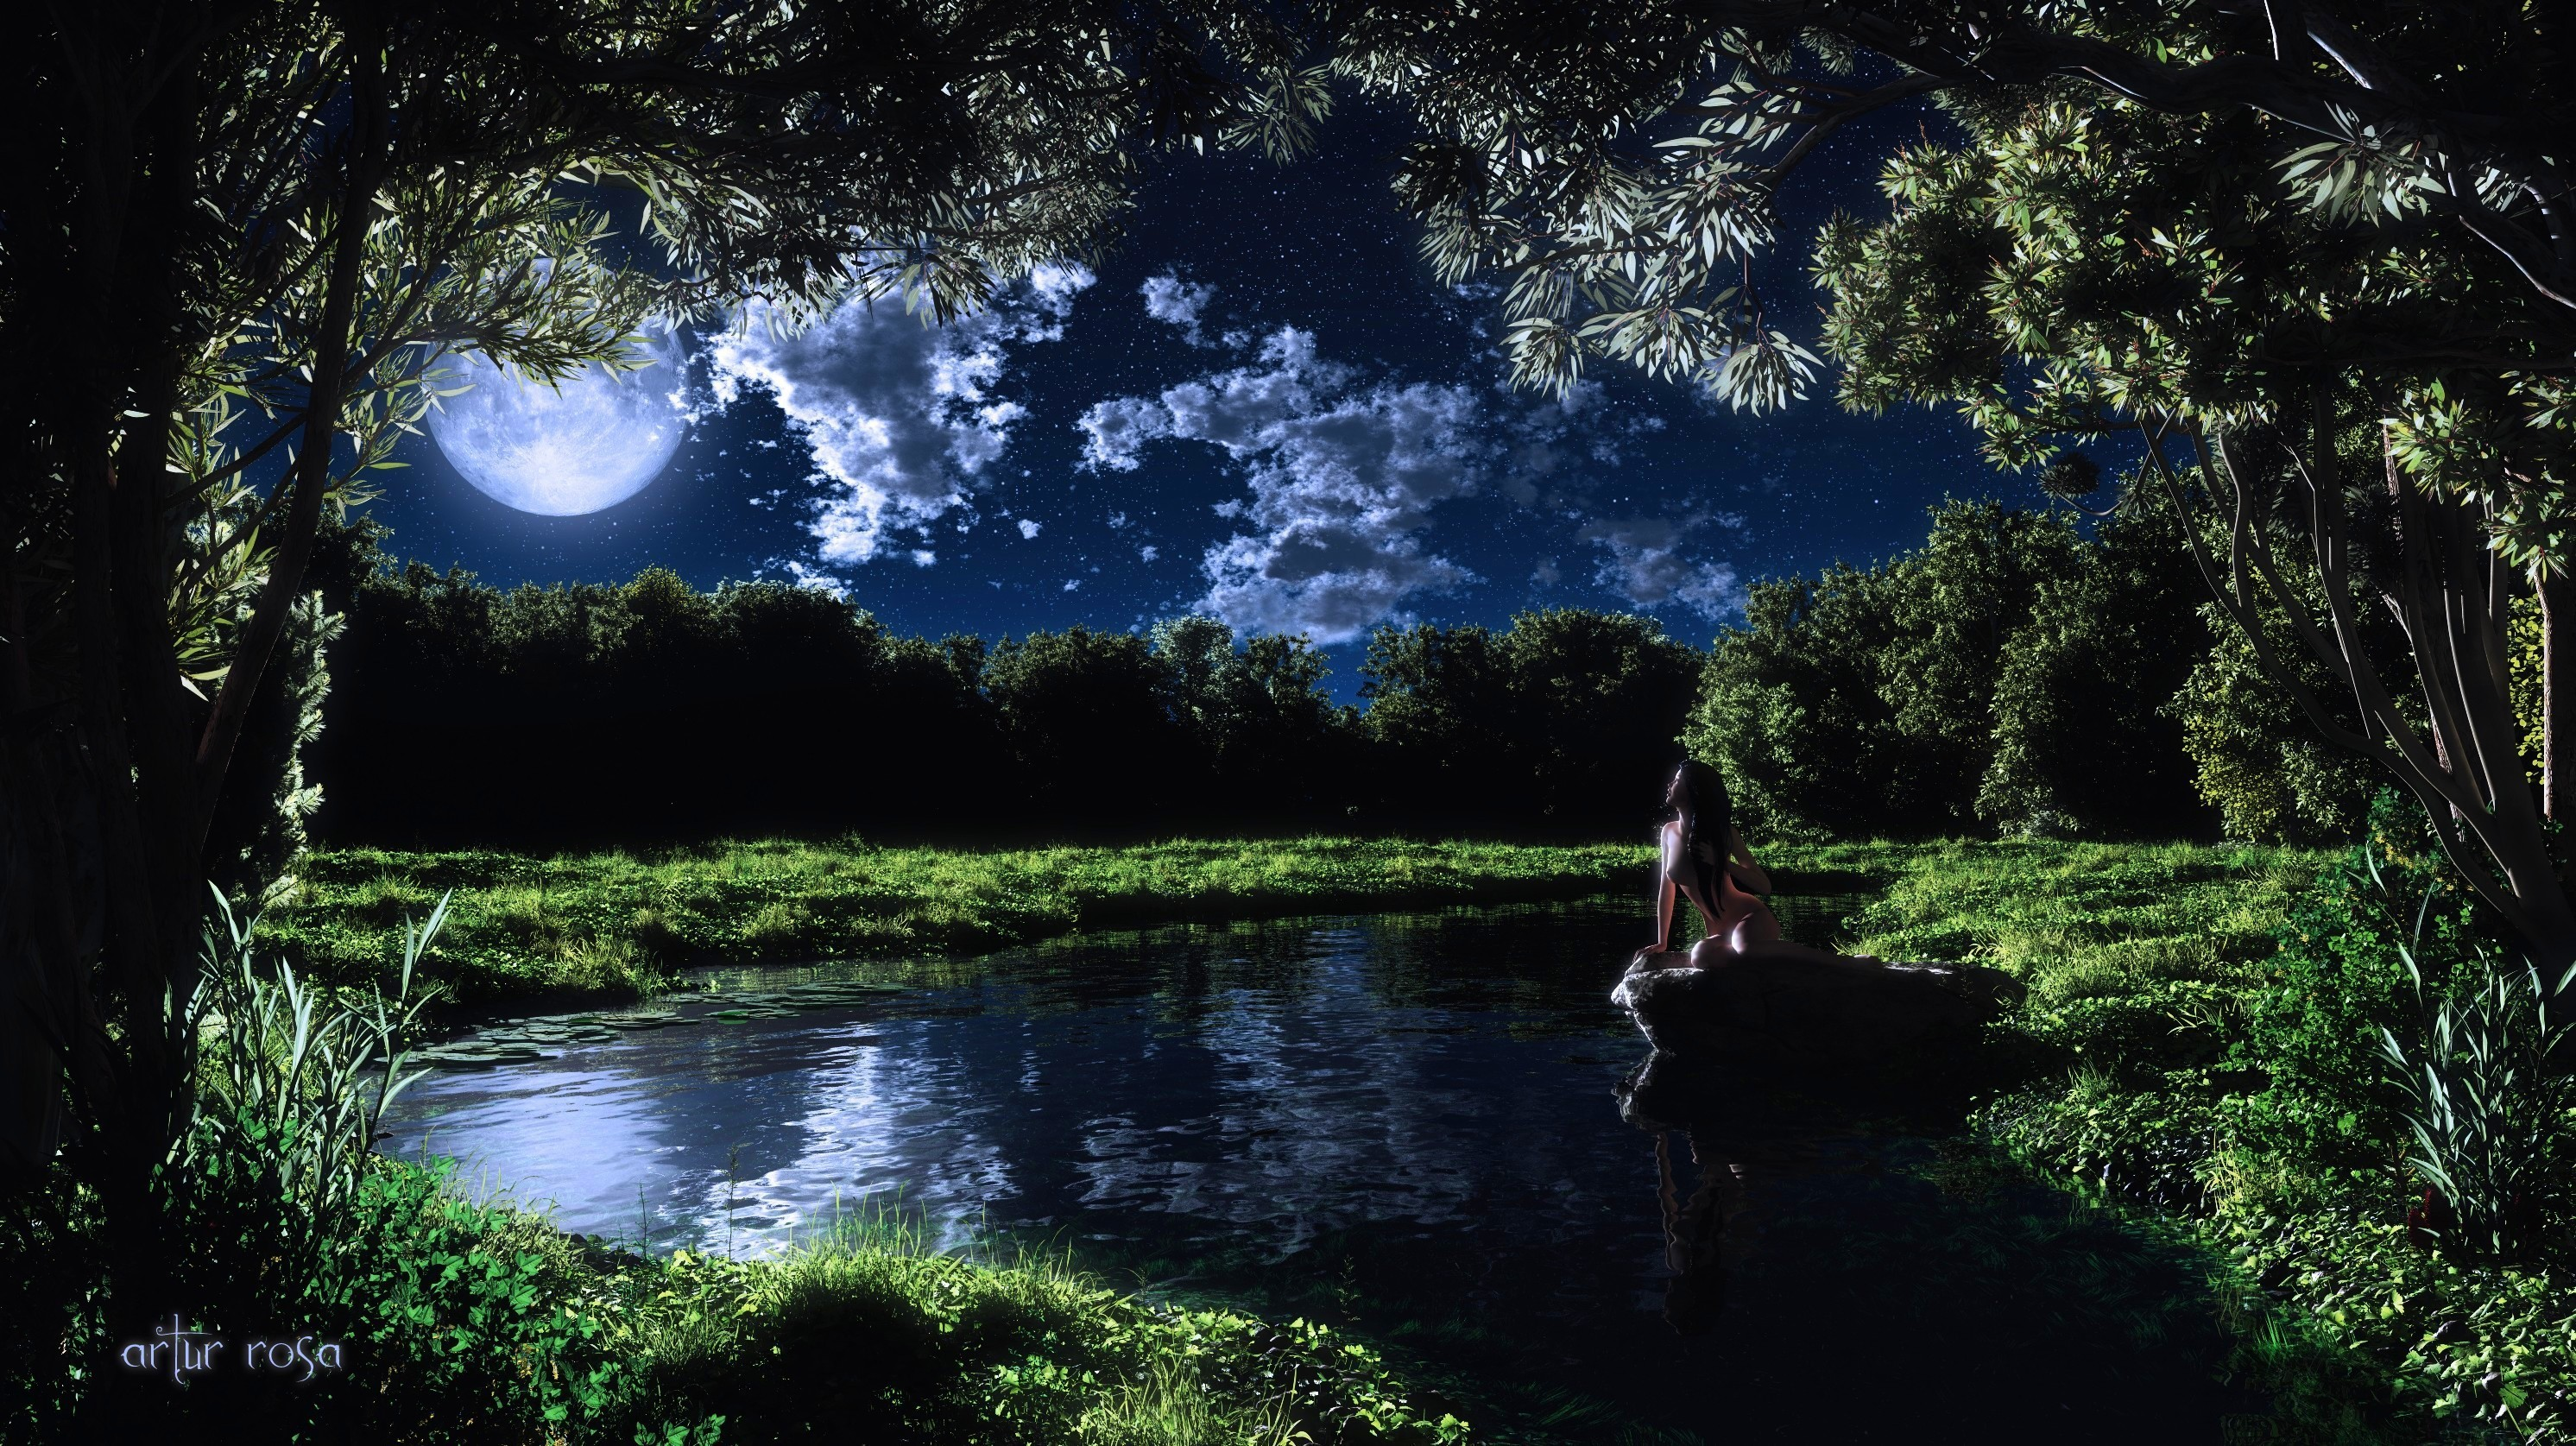 Night Moon Relax wallpapers and images   wallpapers pictures 2984x1675